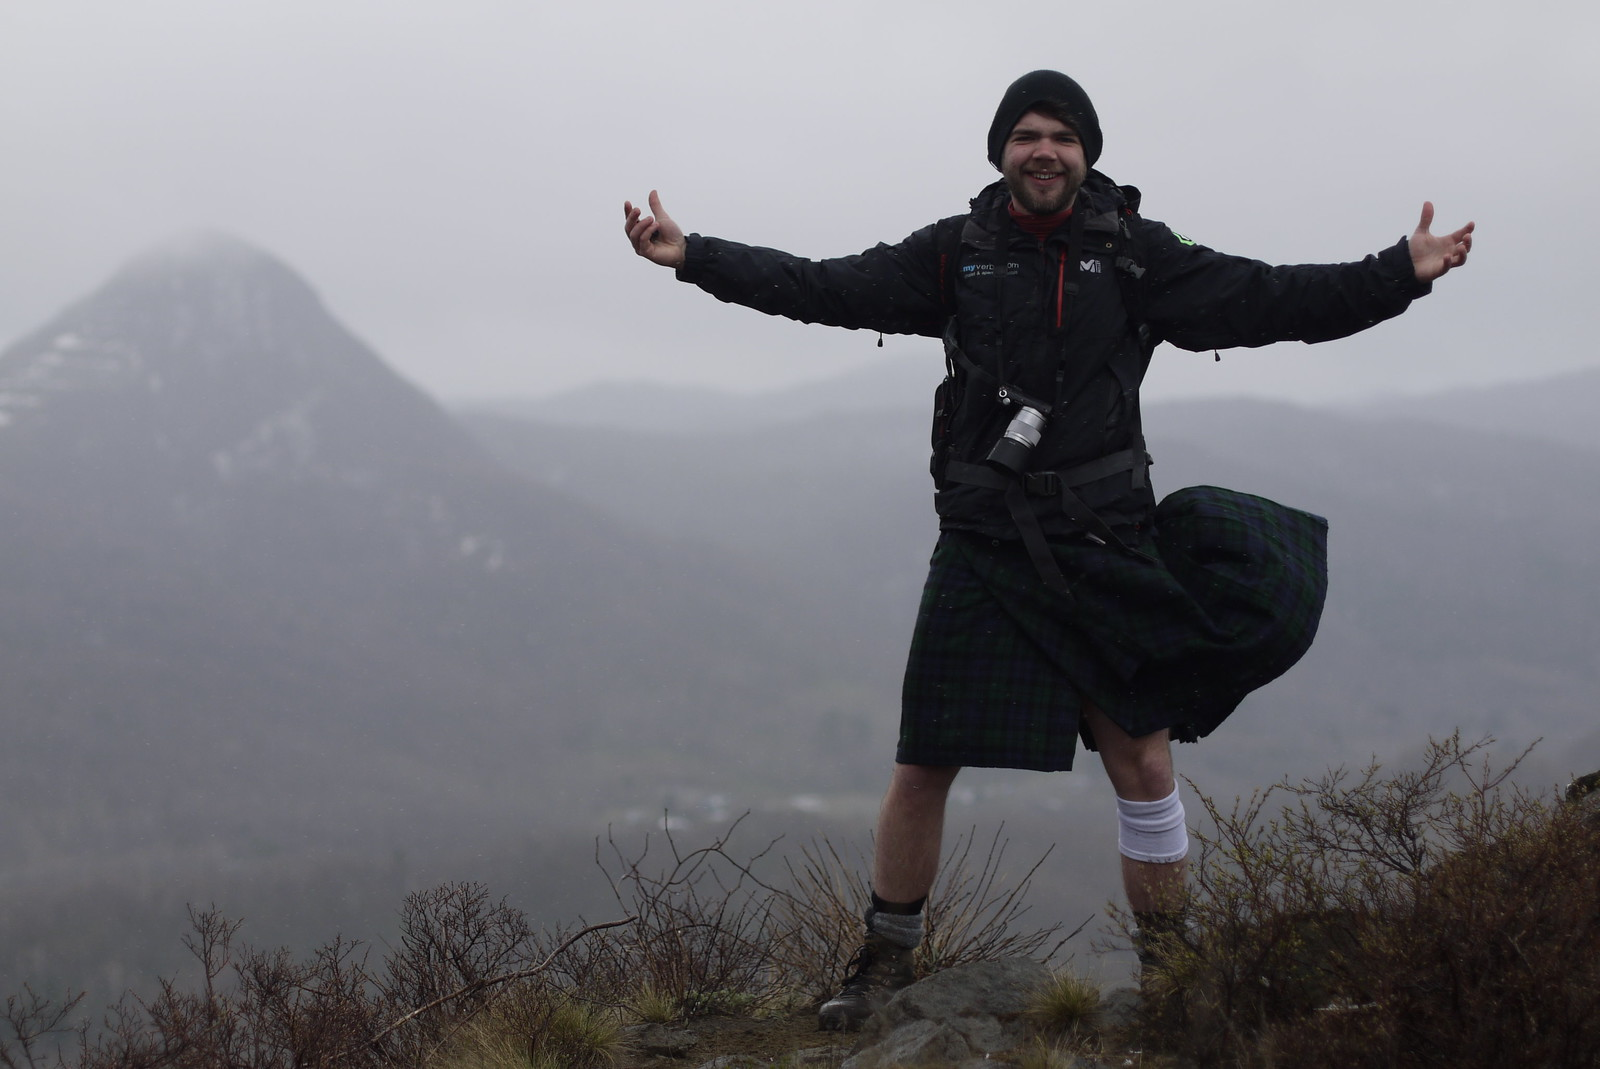 A man hiking in a Scottish kilt on Hakken-zan mountain near Jozankei, Hokkaido, Japan